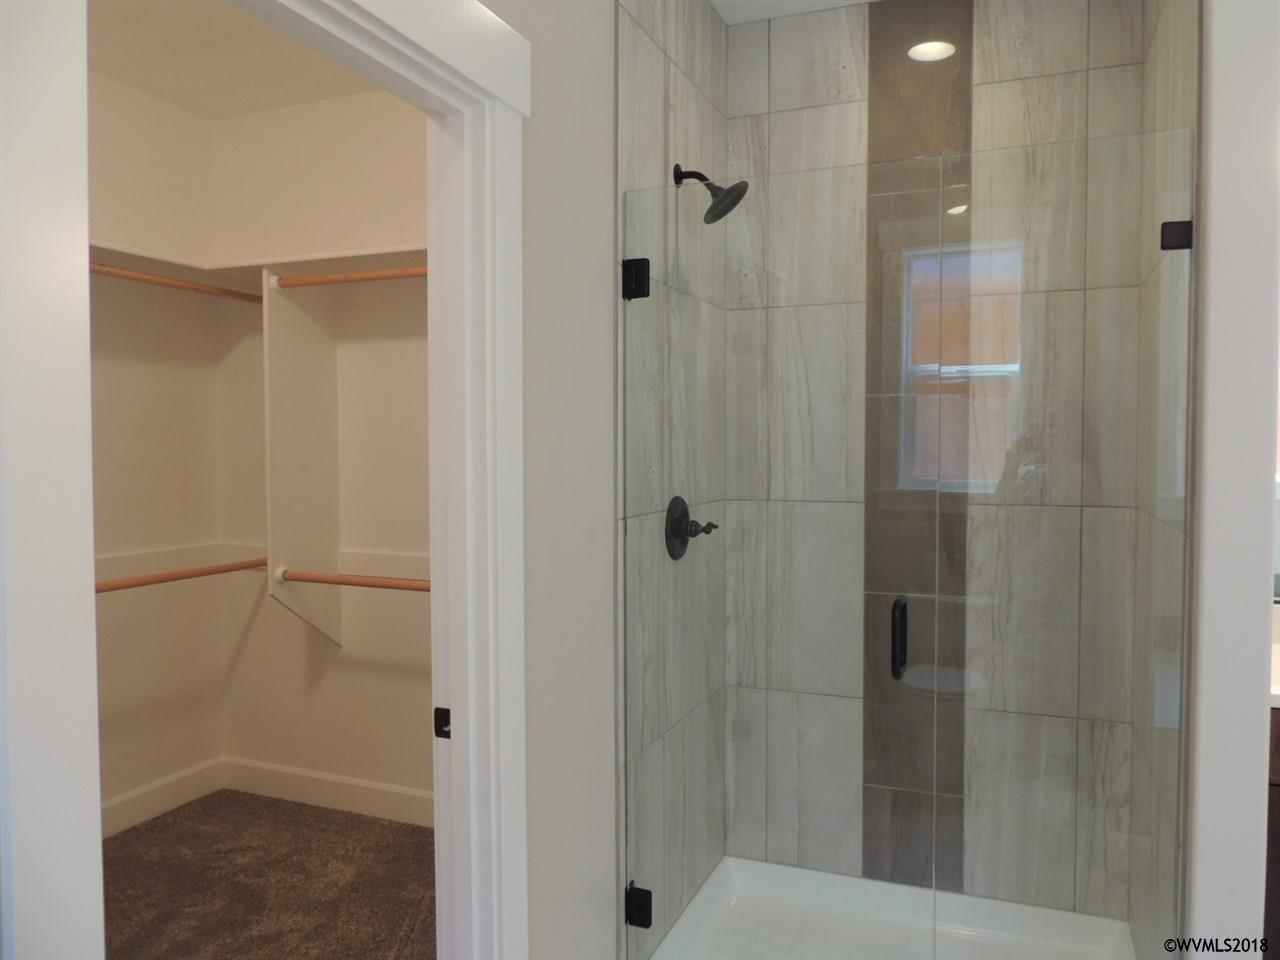 lot 21 shower